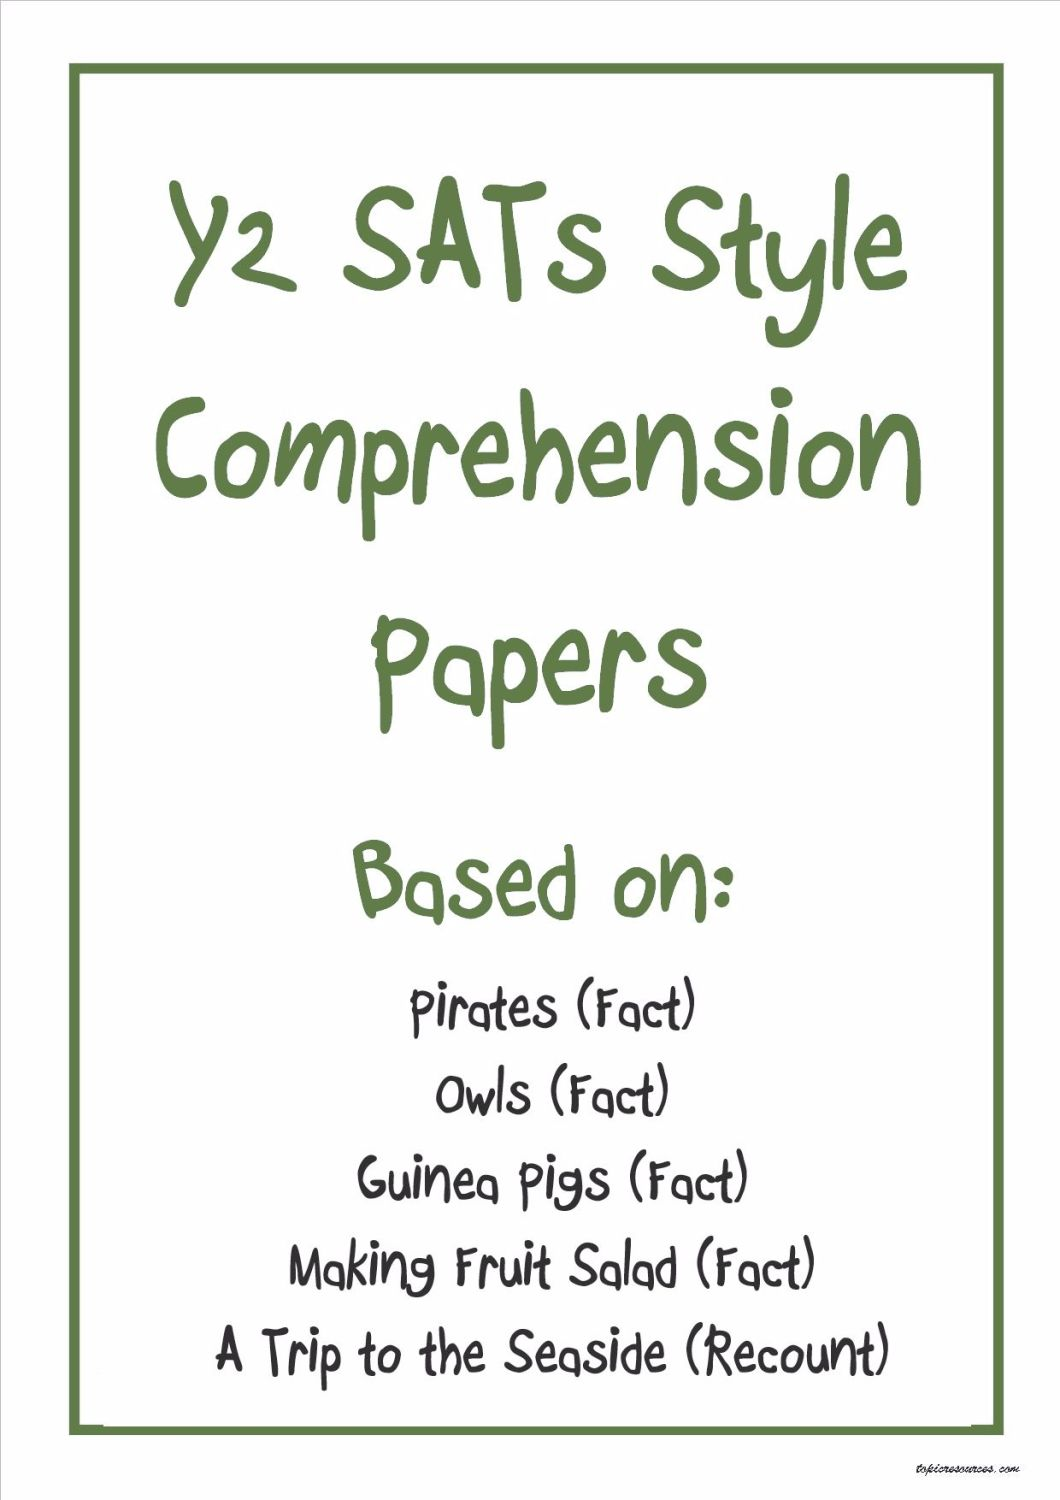 Non-fiction KS1 comprehension papers based on popular KS1 topics (pack 3).